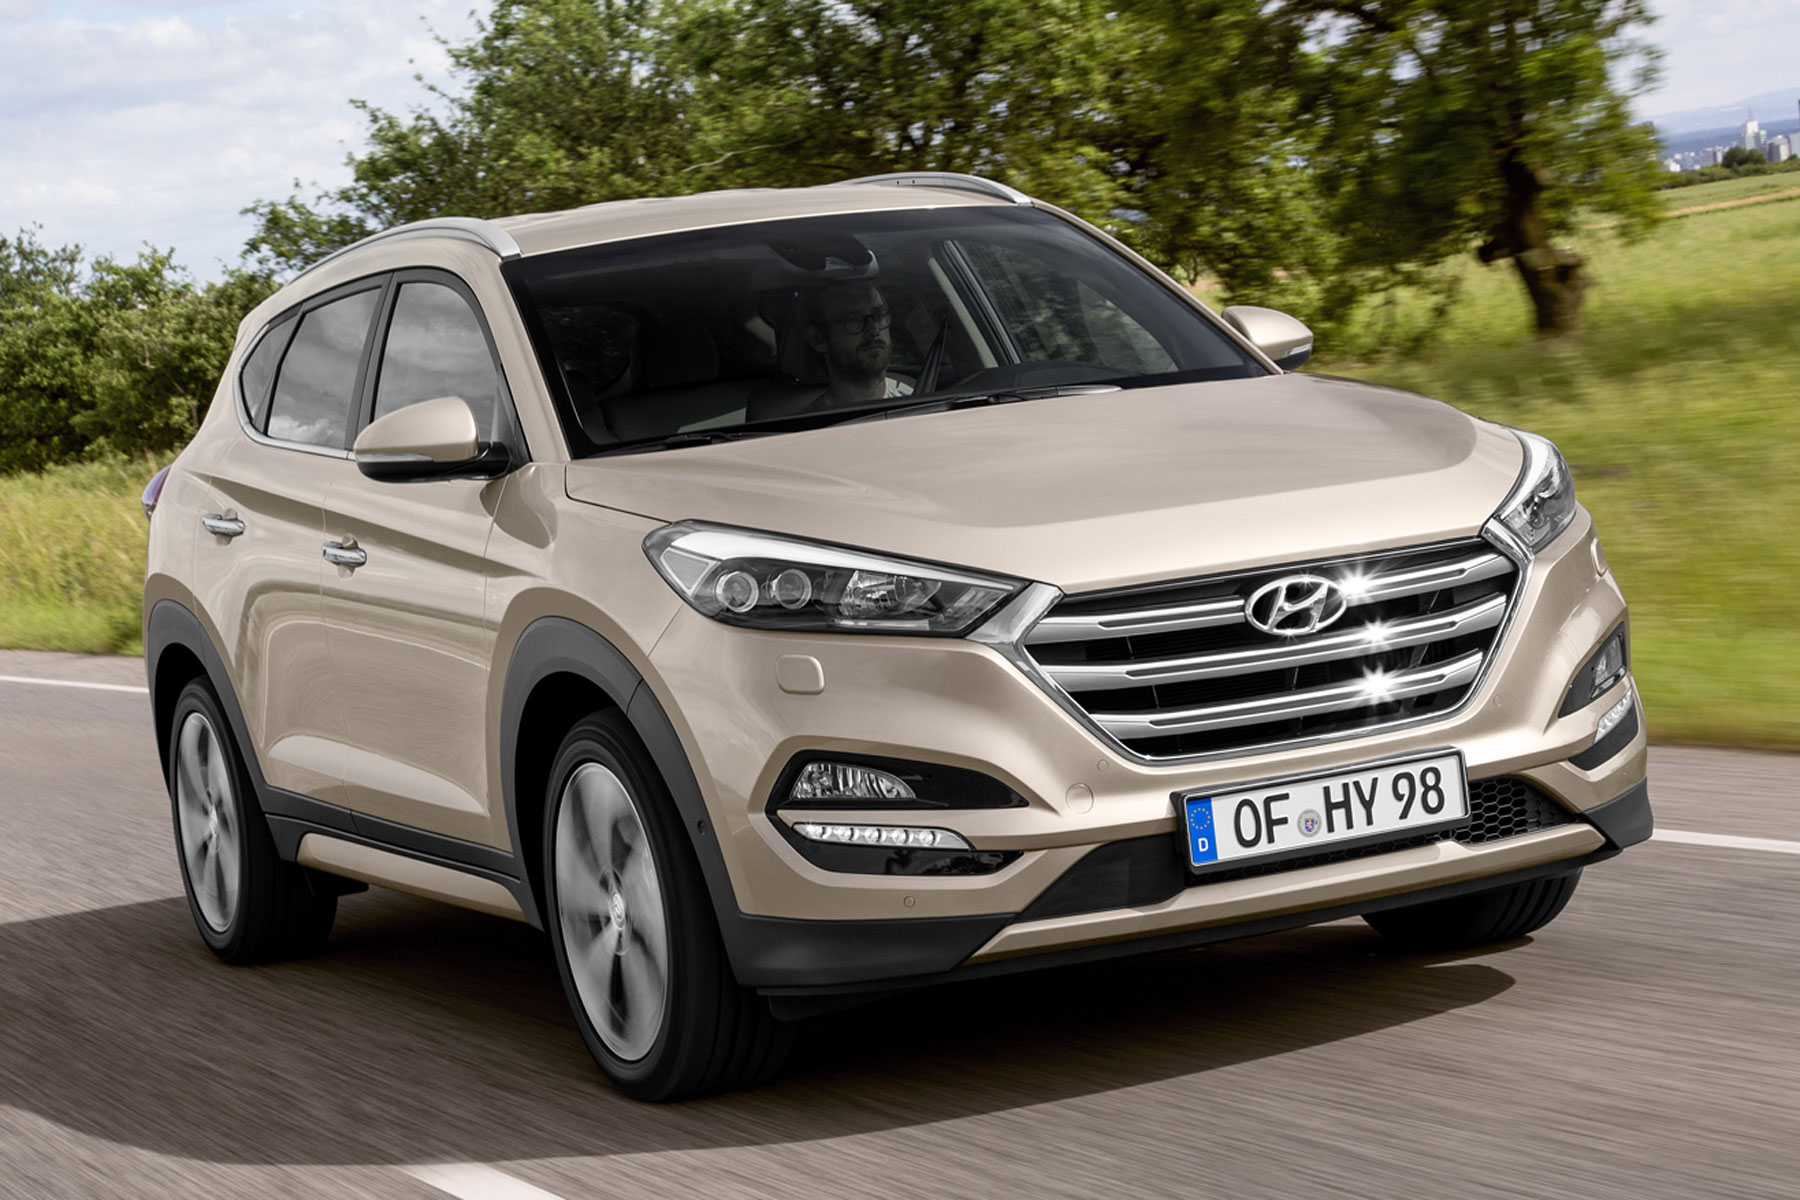 Hyundai Tucson: On the road | Motoring Research